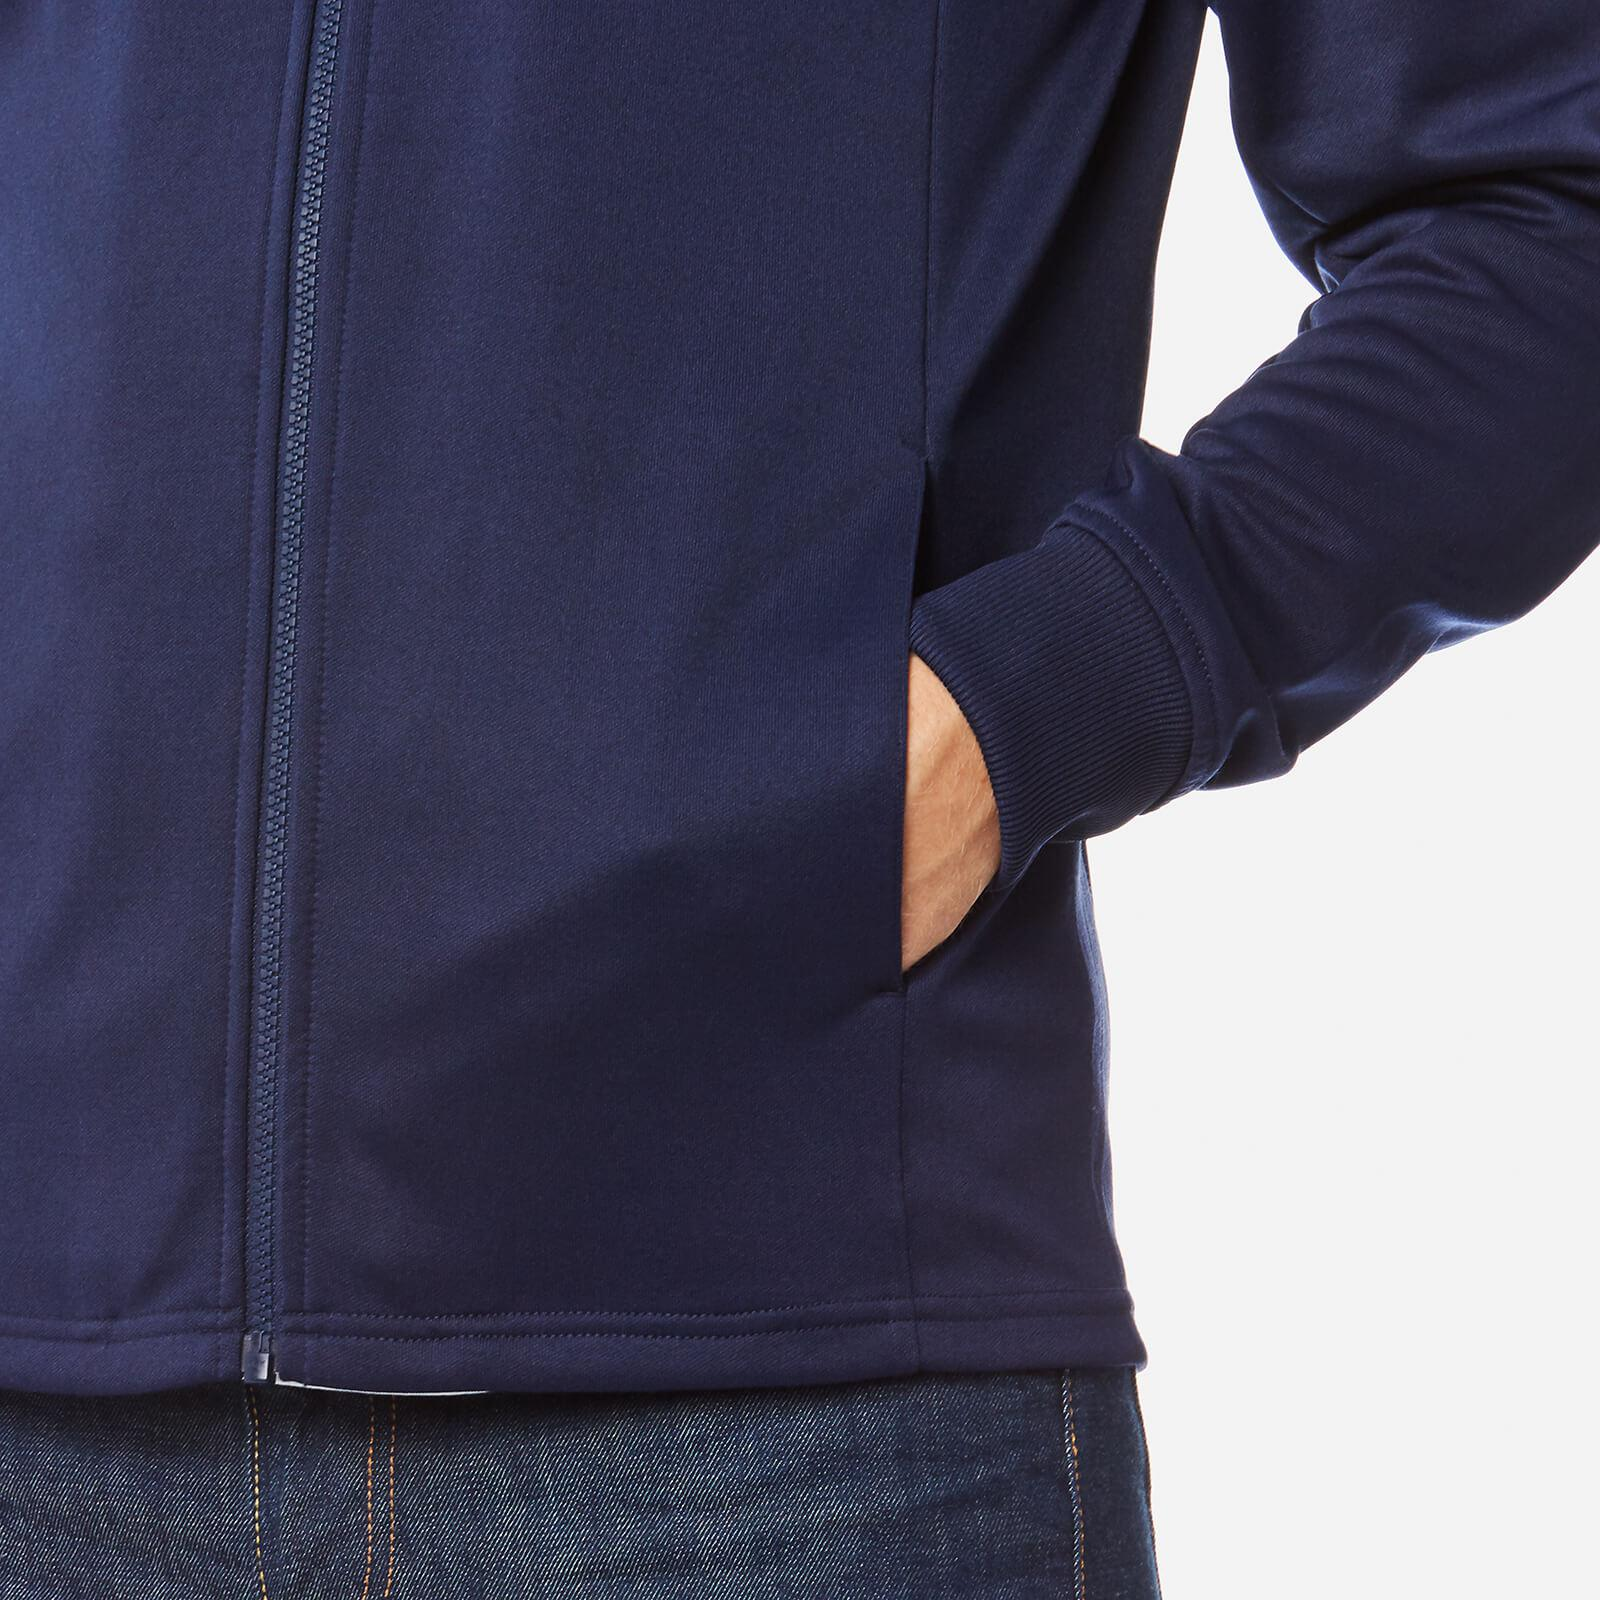 Lyle & Scott Cotton Tricot Hooded Jacket in Navy (Blue) for Men